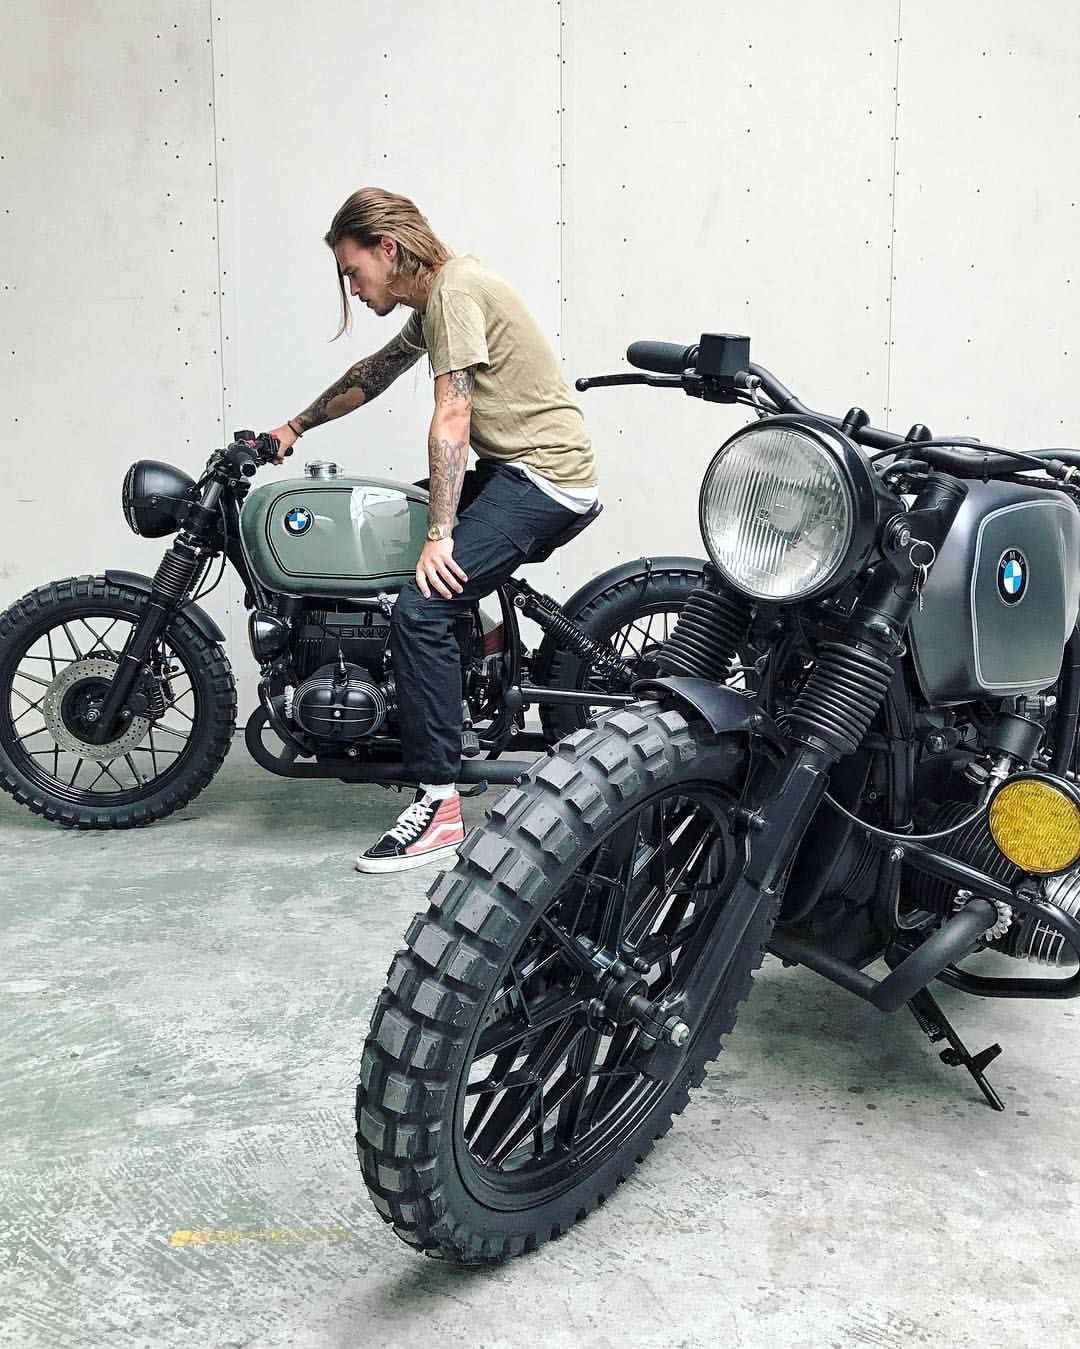 Bmw Vintage Scrambler Matth Pint Ig Matt P R With Images